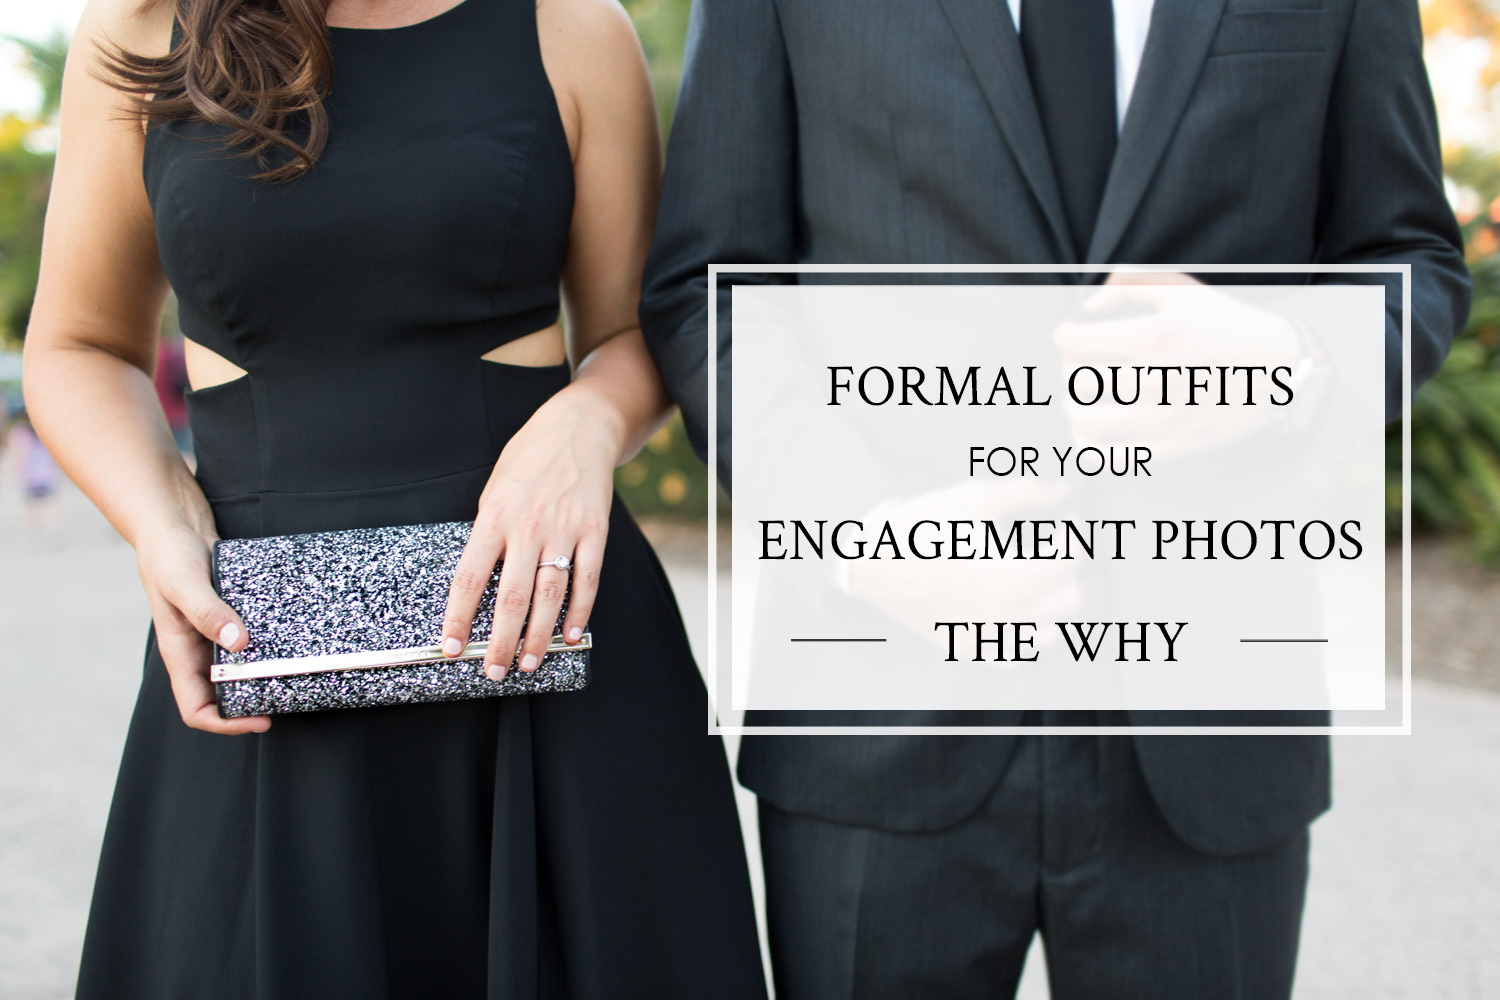 Black dress engagement photos - Black Dress Engagement Photos 5 Reasons Why Formal Engagement Outfits Make For The Most Beautiful